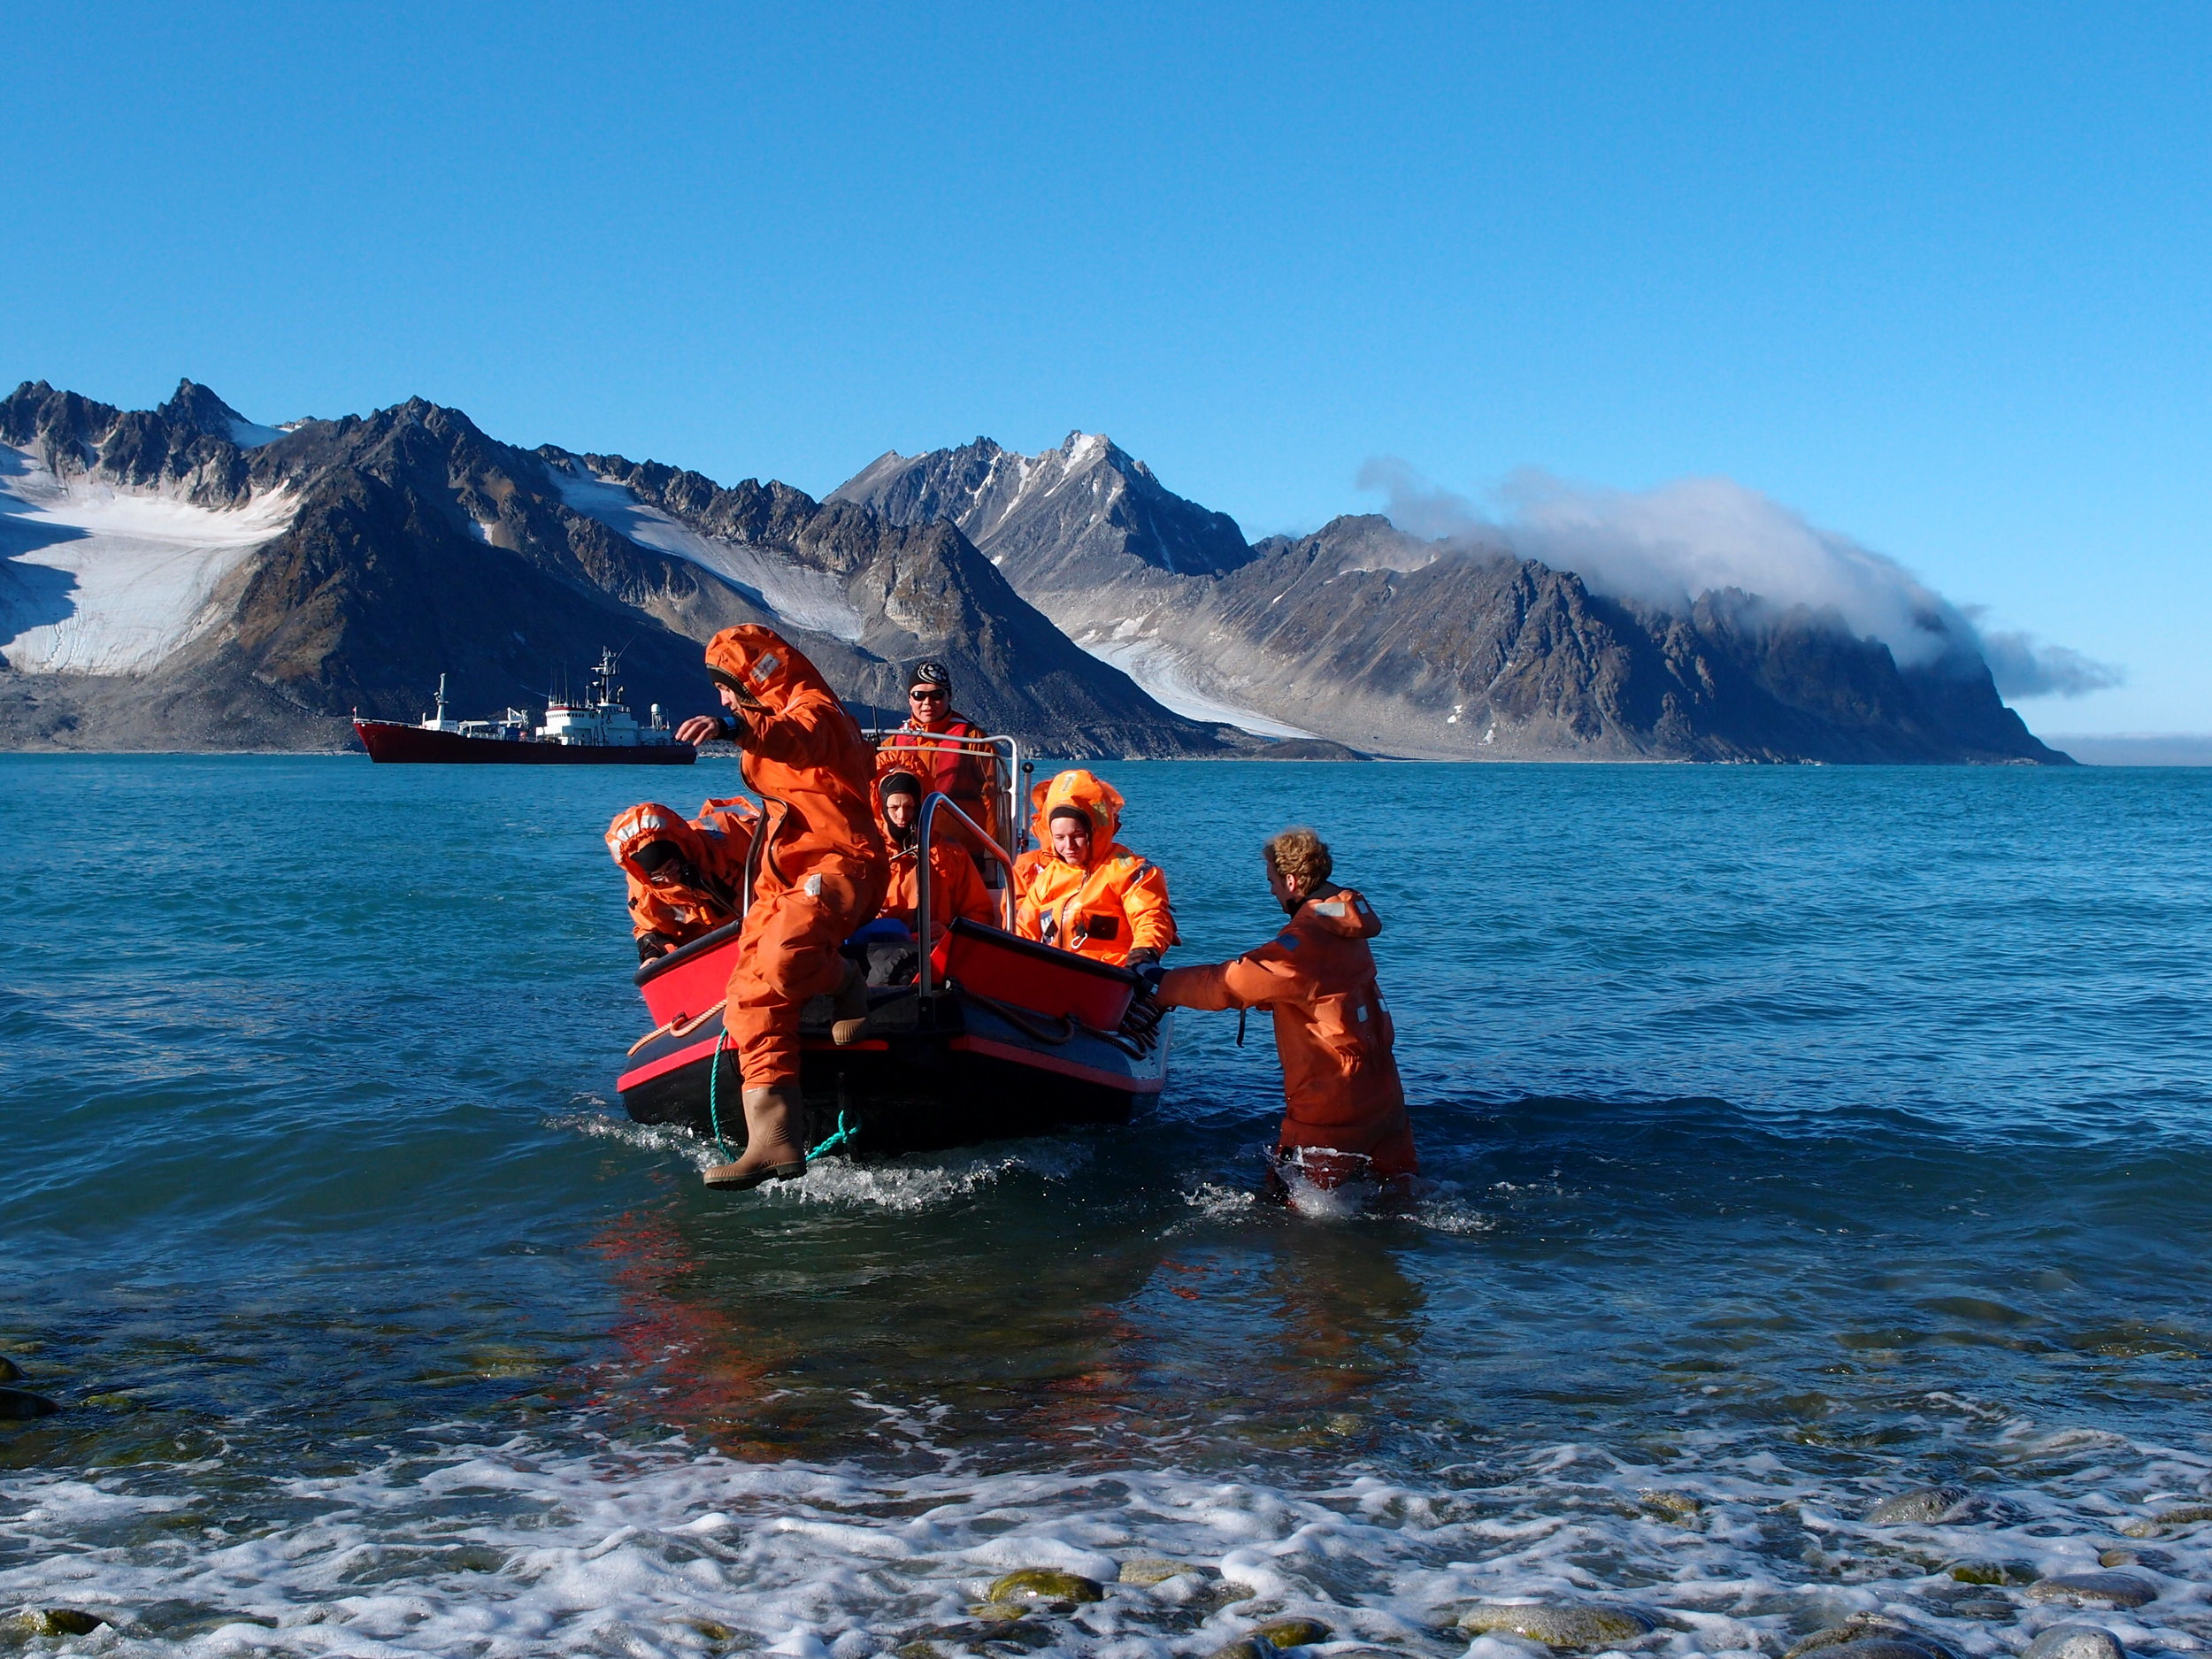 Svalbard is increasingly popular among tourists and scientists alike, also in summertime. But even if ocean temperatures are above freezing, survival suits are a must when landing on Svalbard's shores. Photo: Steve Coulson / UNIS